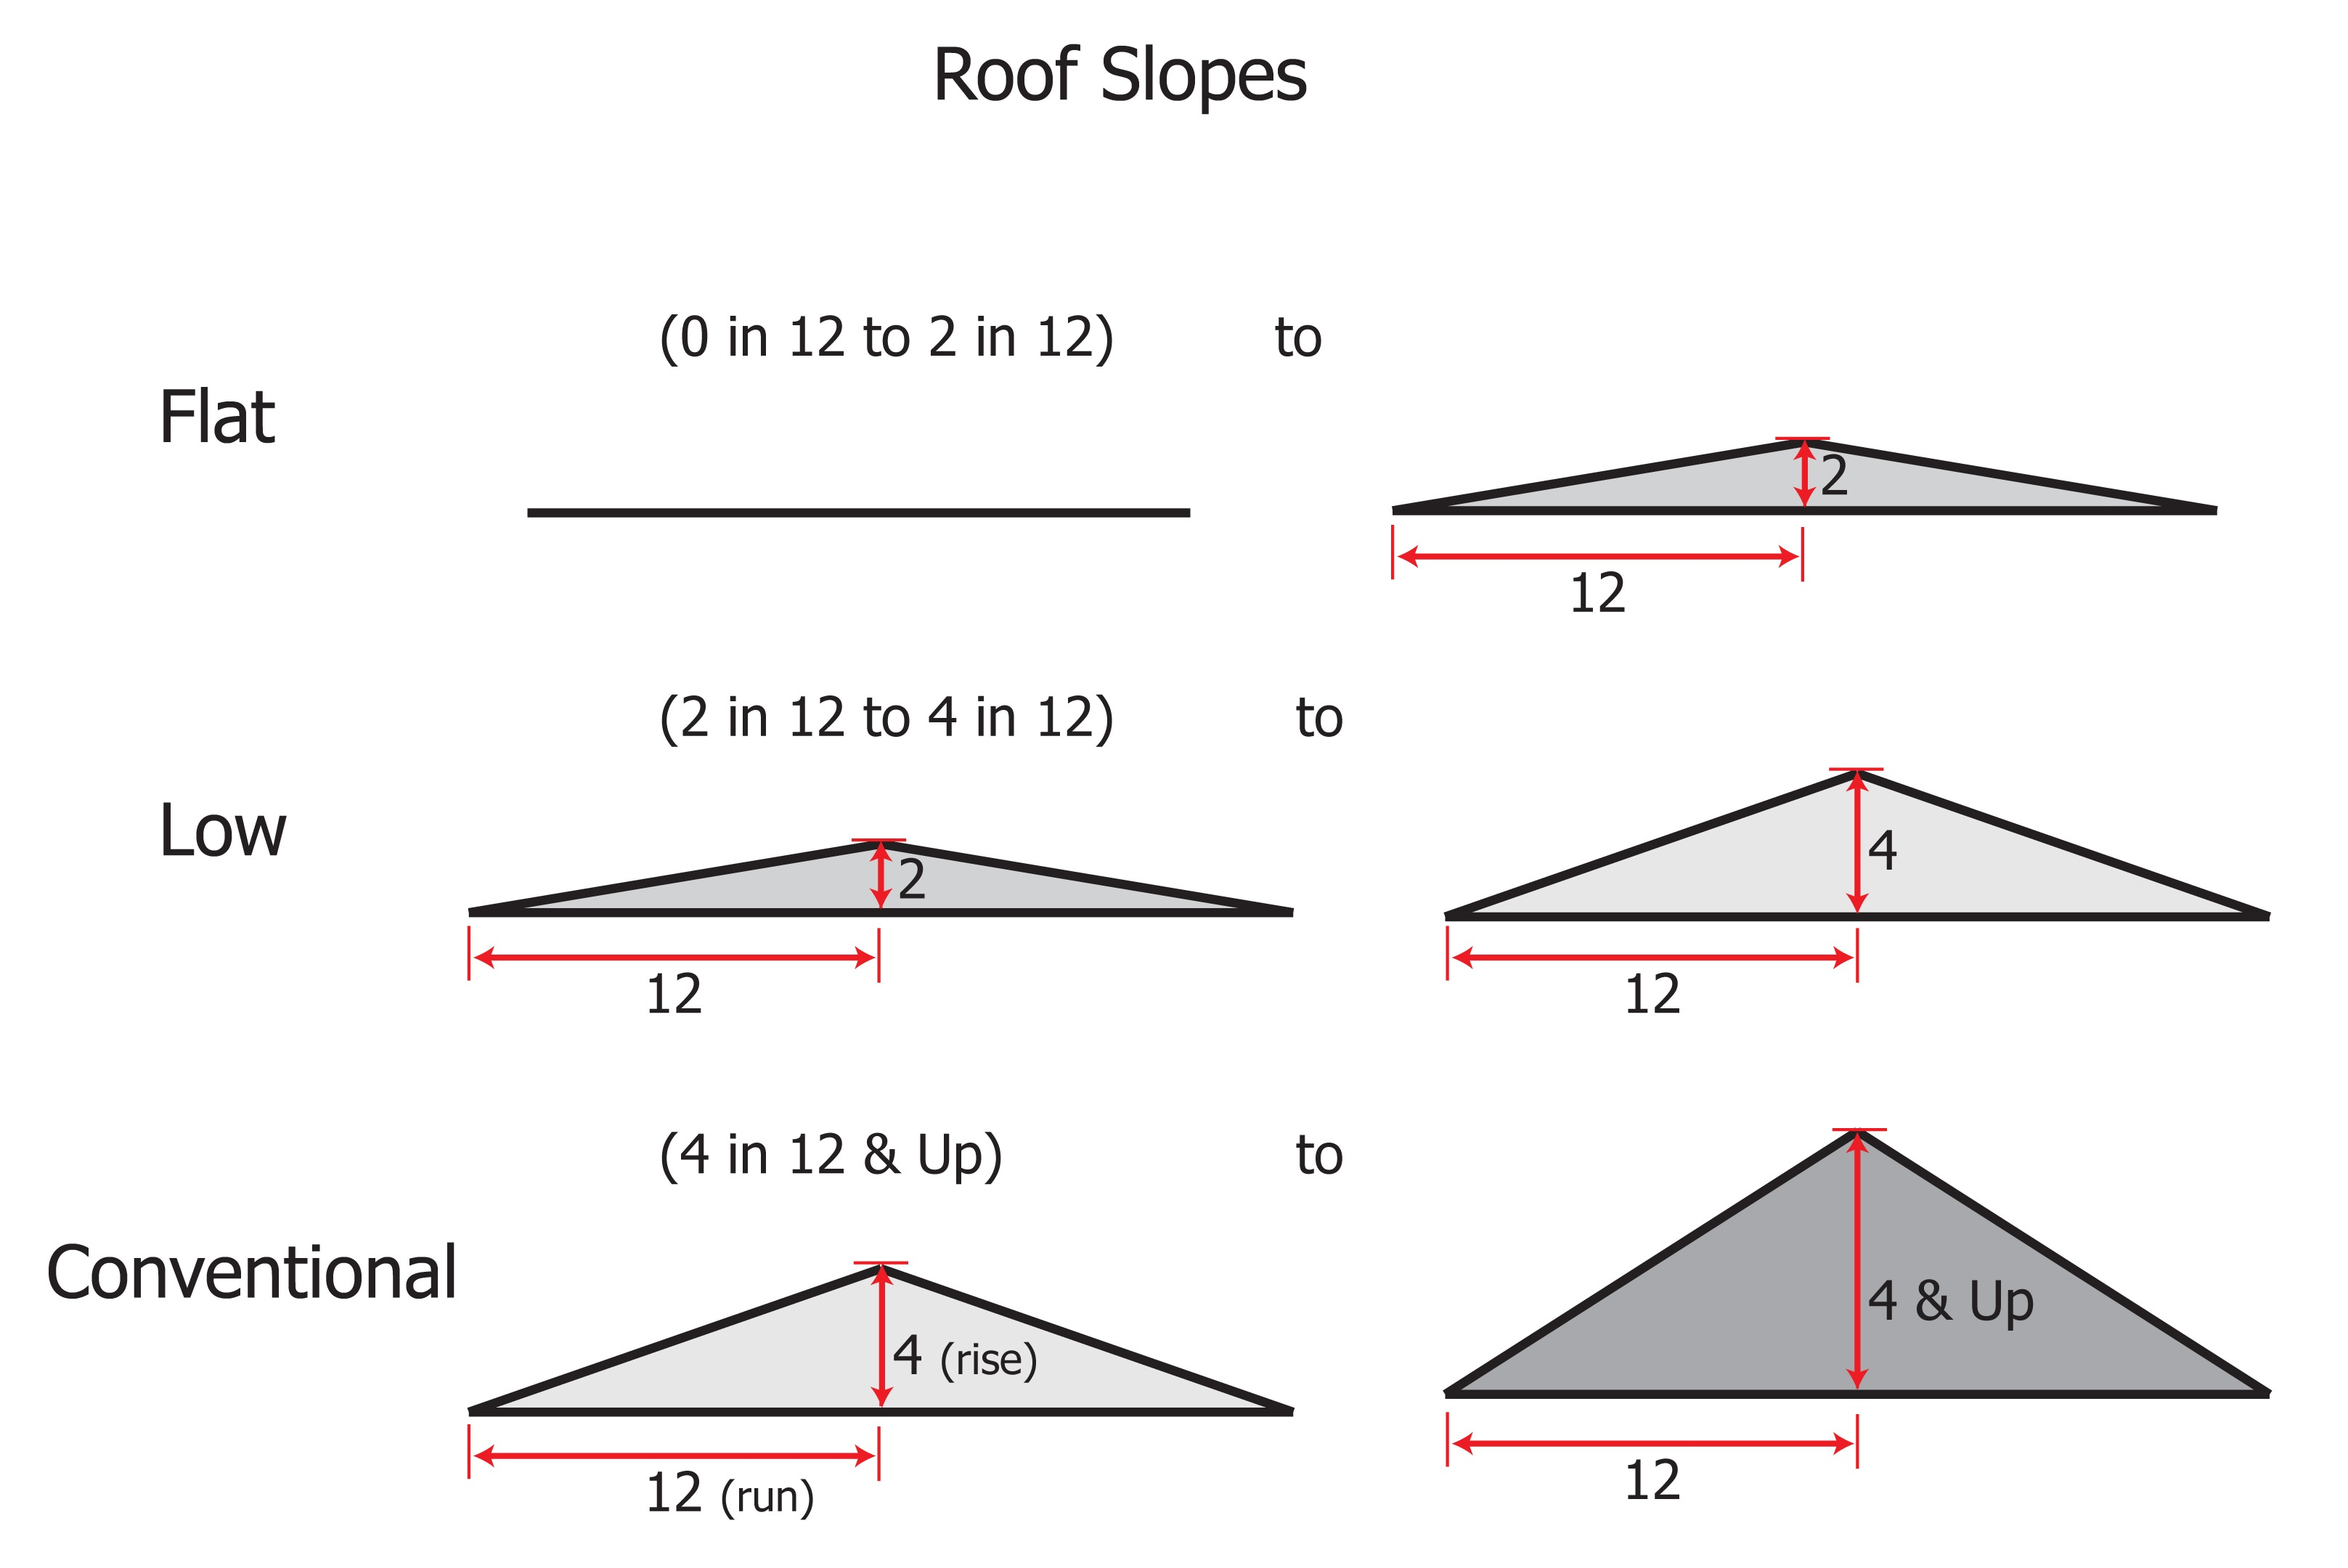 Roof slopes.